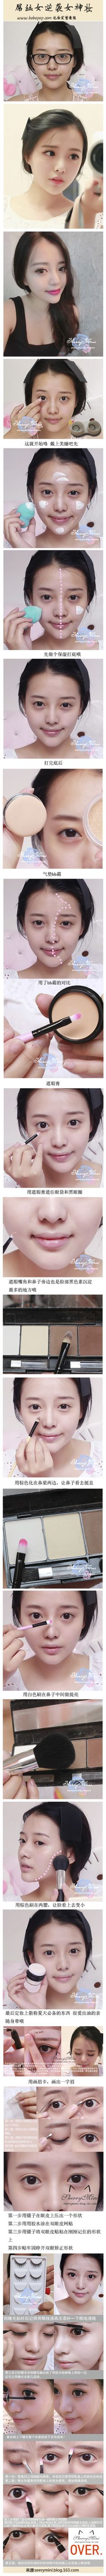 Korean make up http://nerium.kr/preenroll/debbiekrug?alias=debbiekrug | www.AsianSkincare.Rocks